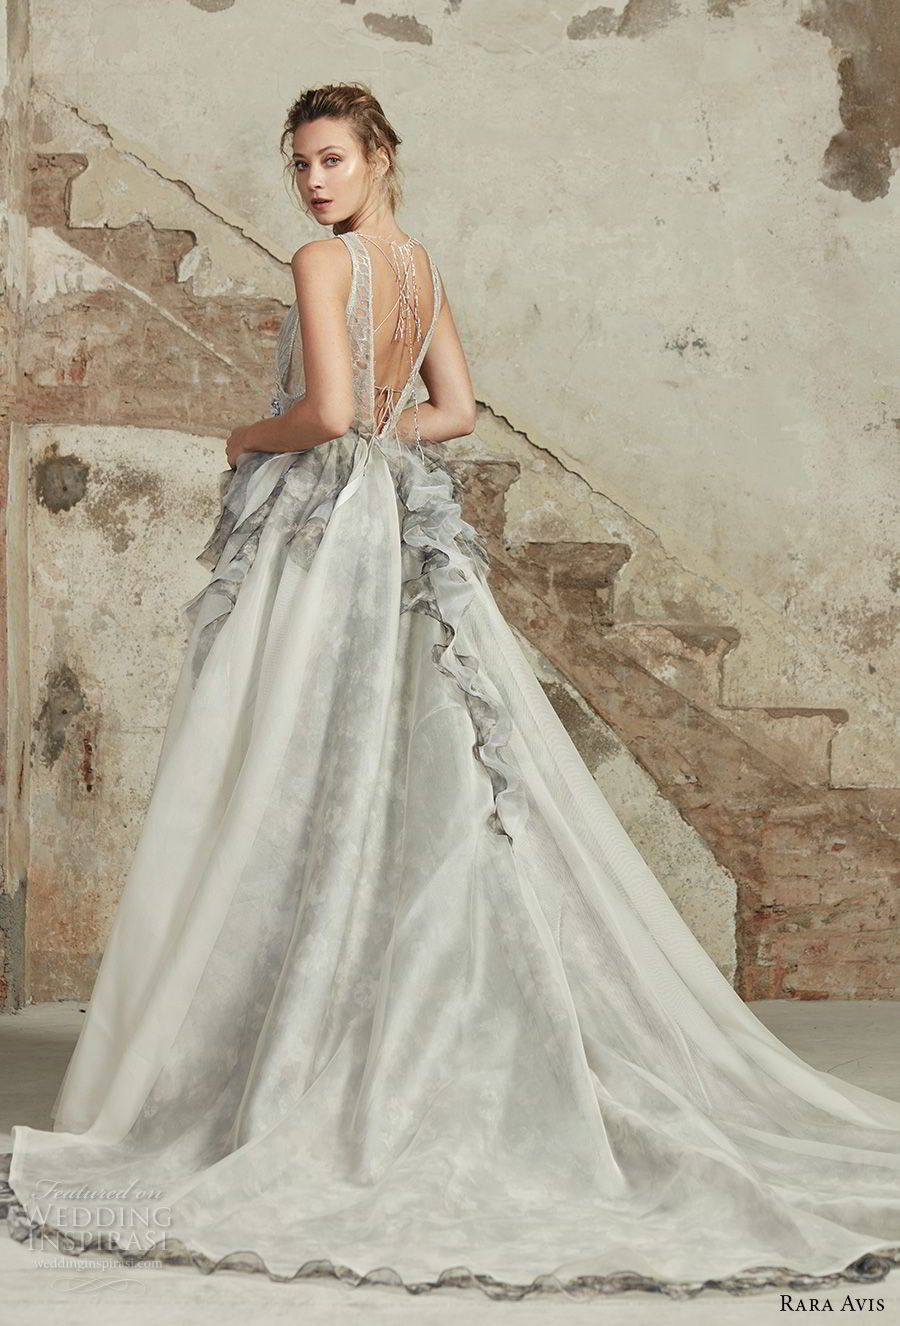 rara avis 2017 bridal sleeveless jewel neck heavily embellished bodice peplum pastel grey romantic a line wedding dress open v back chapel train (4) bv